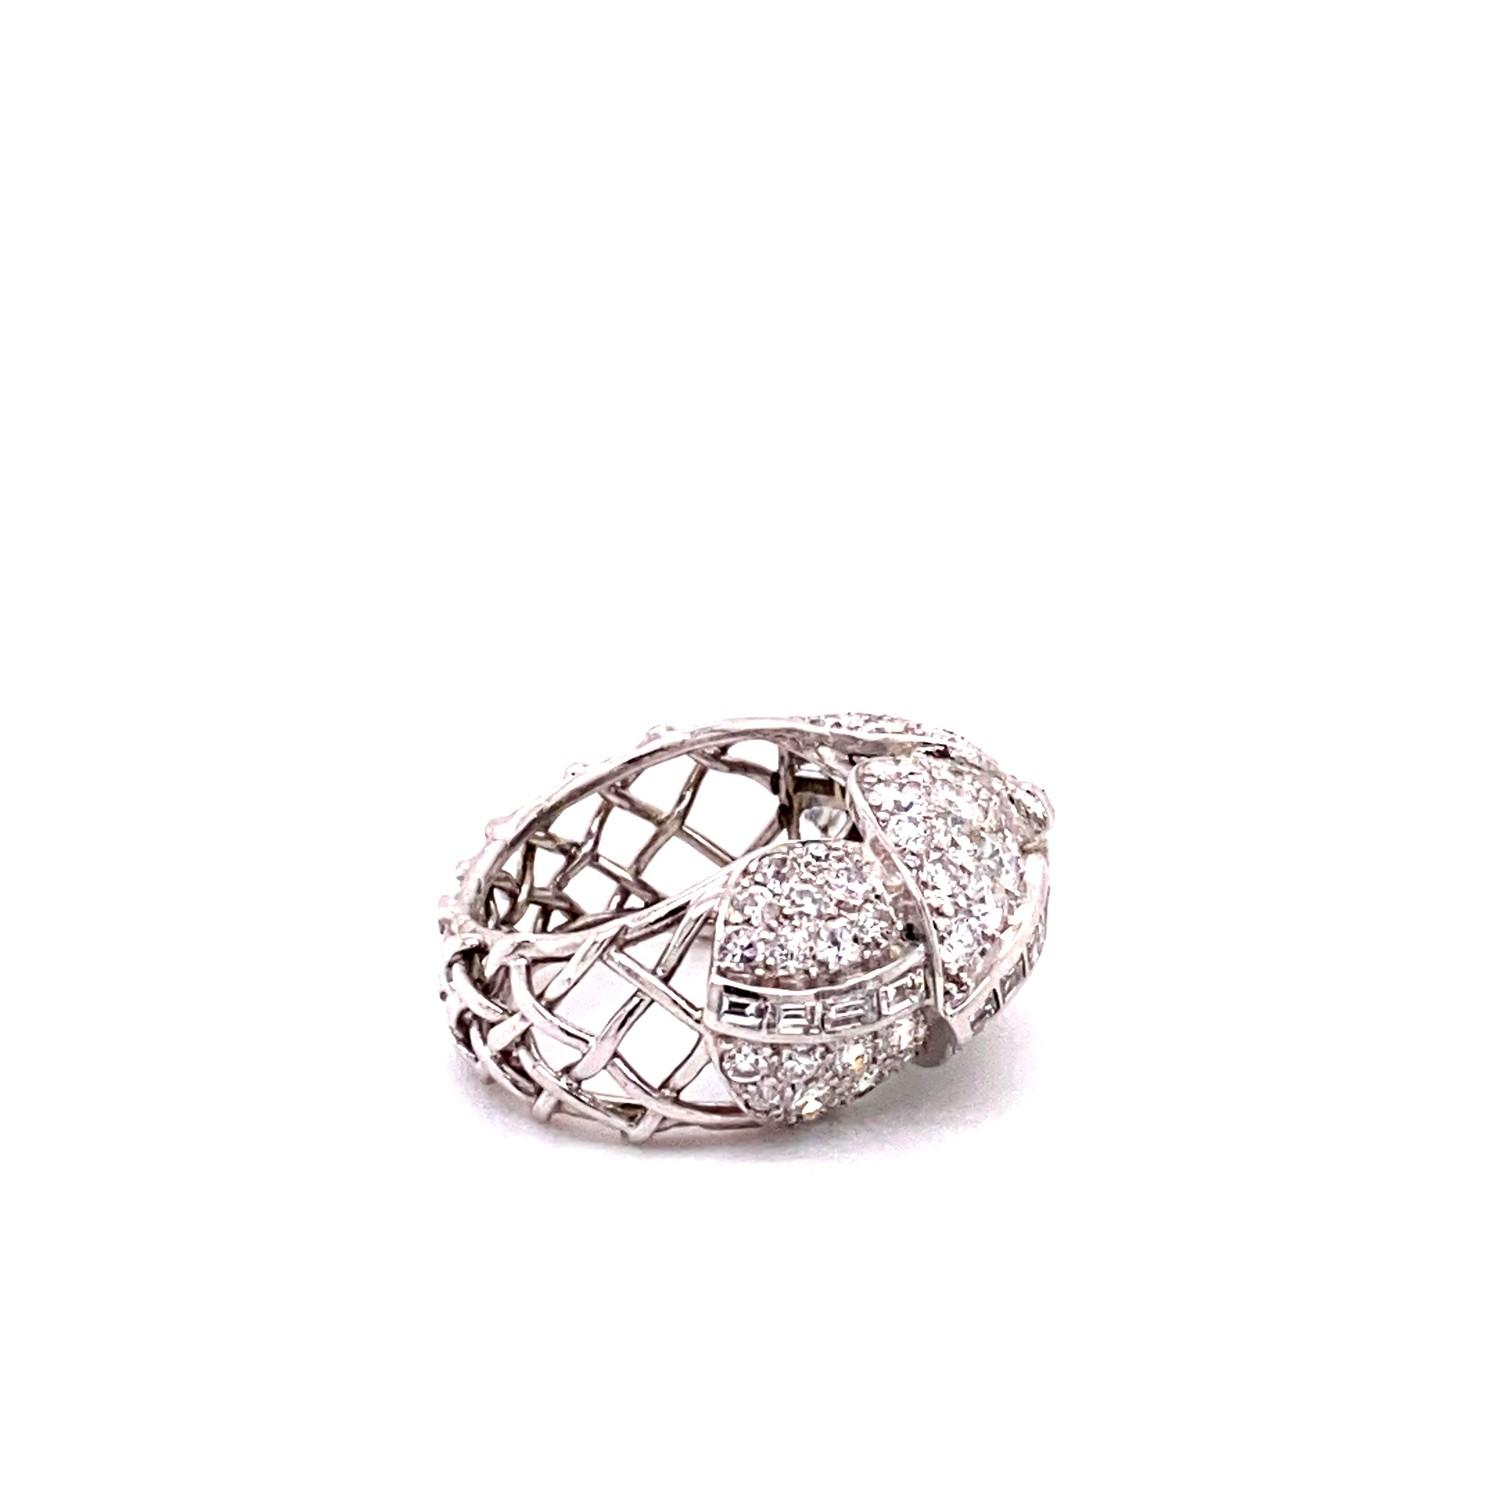 A 1950's Cartier Cocktail Ring, Cartier baguette and brilliant cut pave set dome top bombe ring